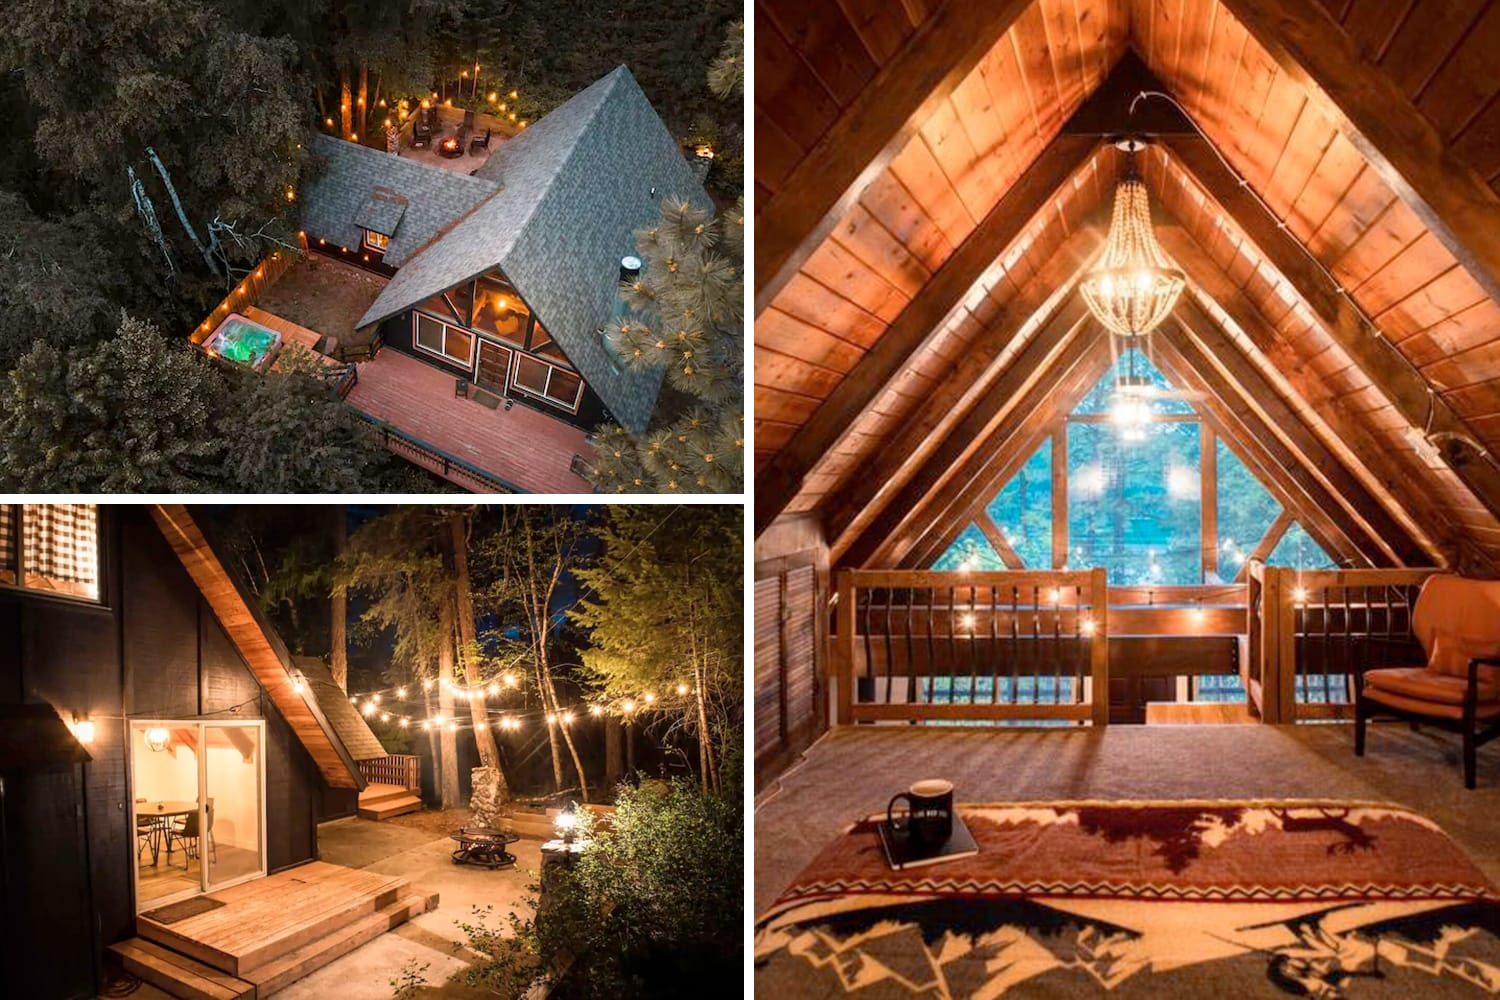 Classic A-Frame Airbnb Cabin in Whitefish